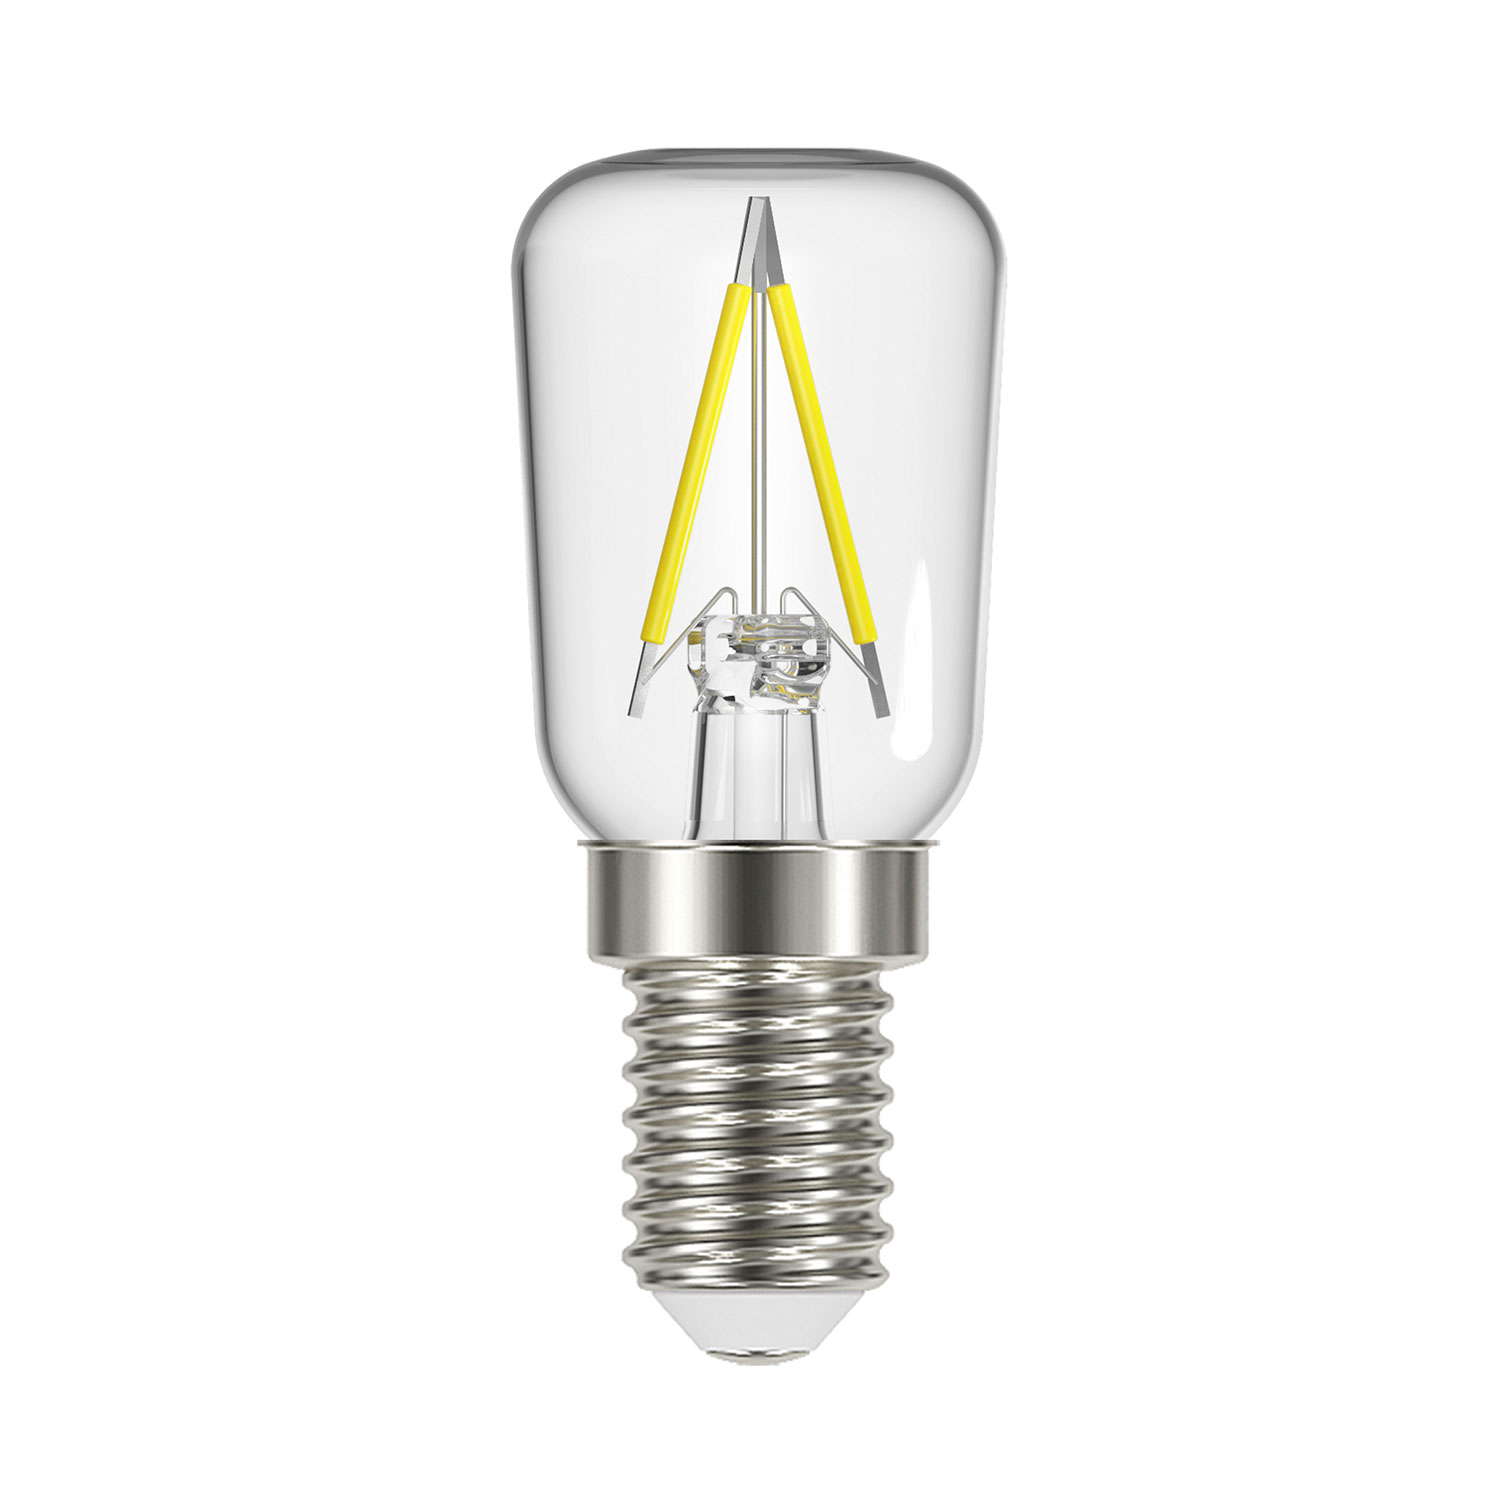 LED päronlampa E14, 2-pack